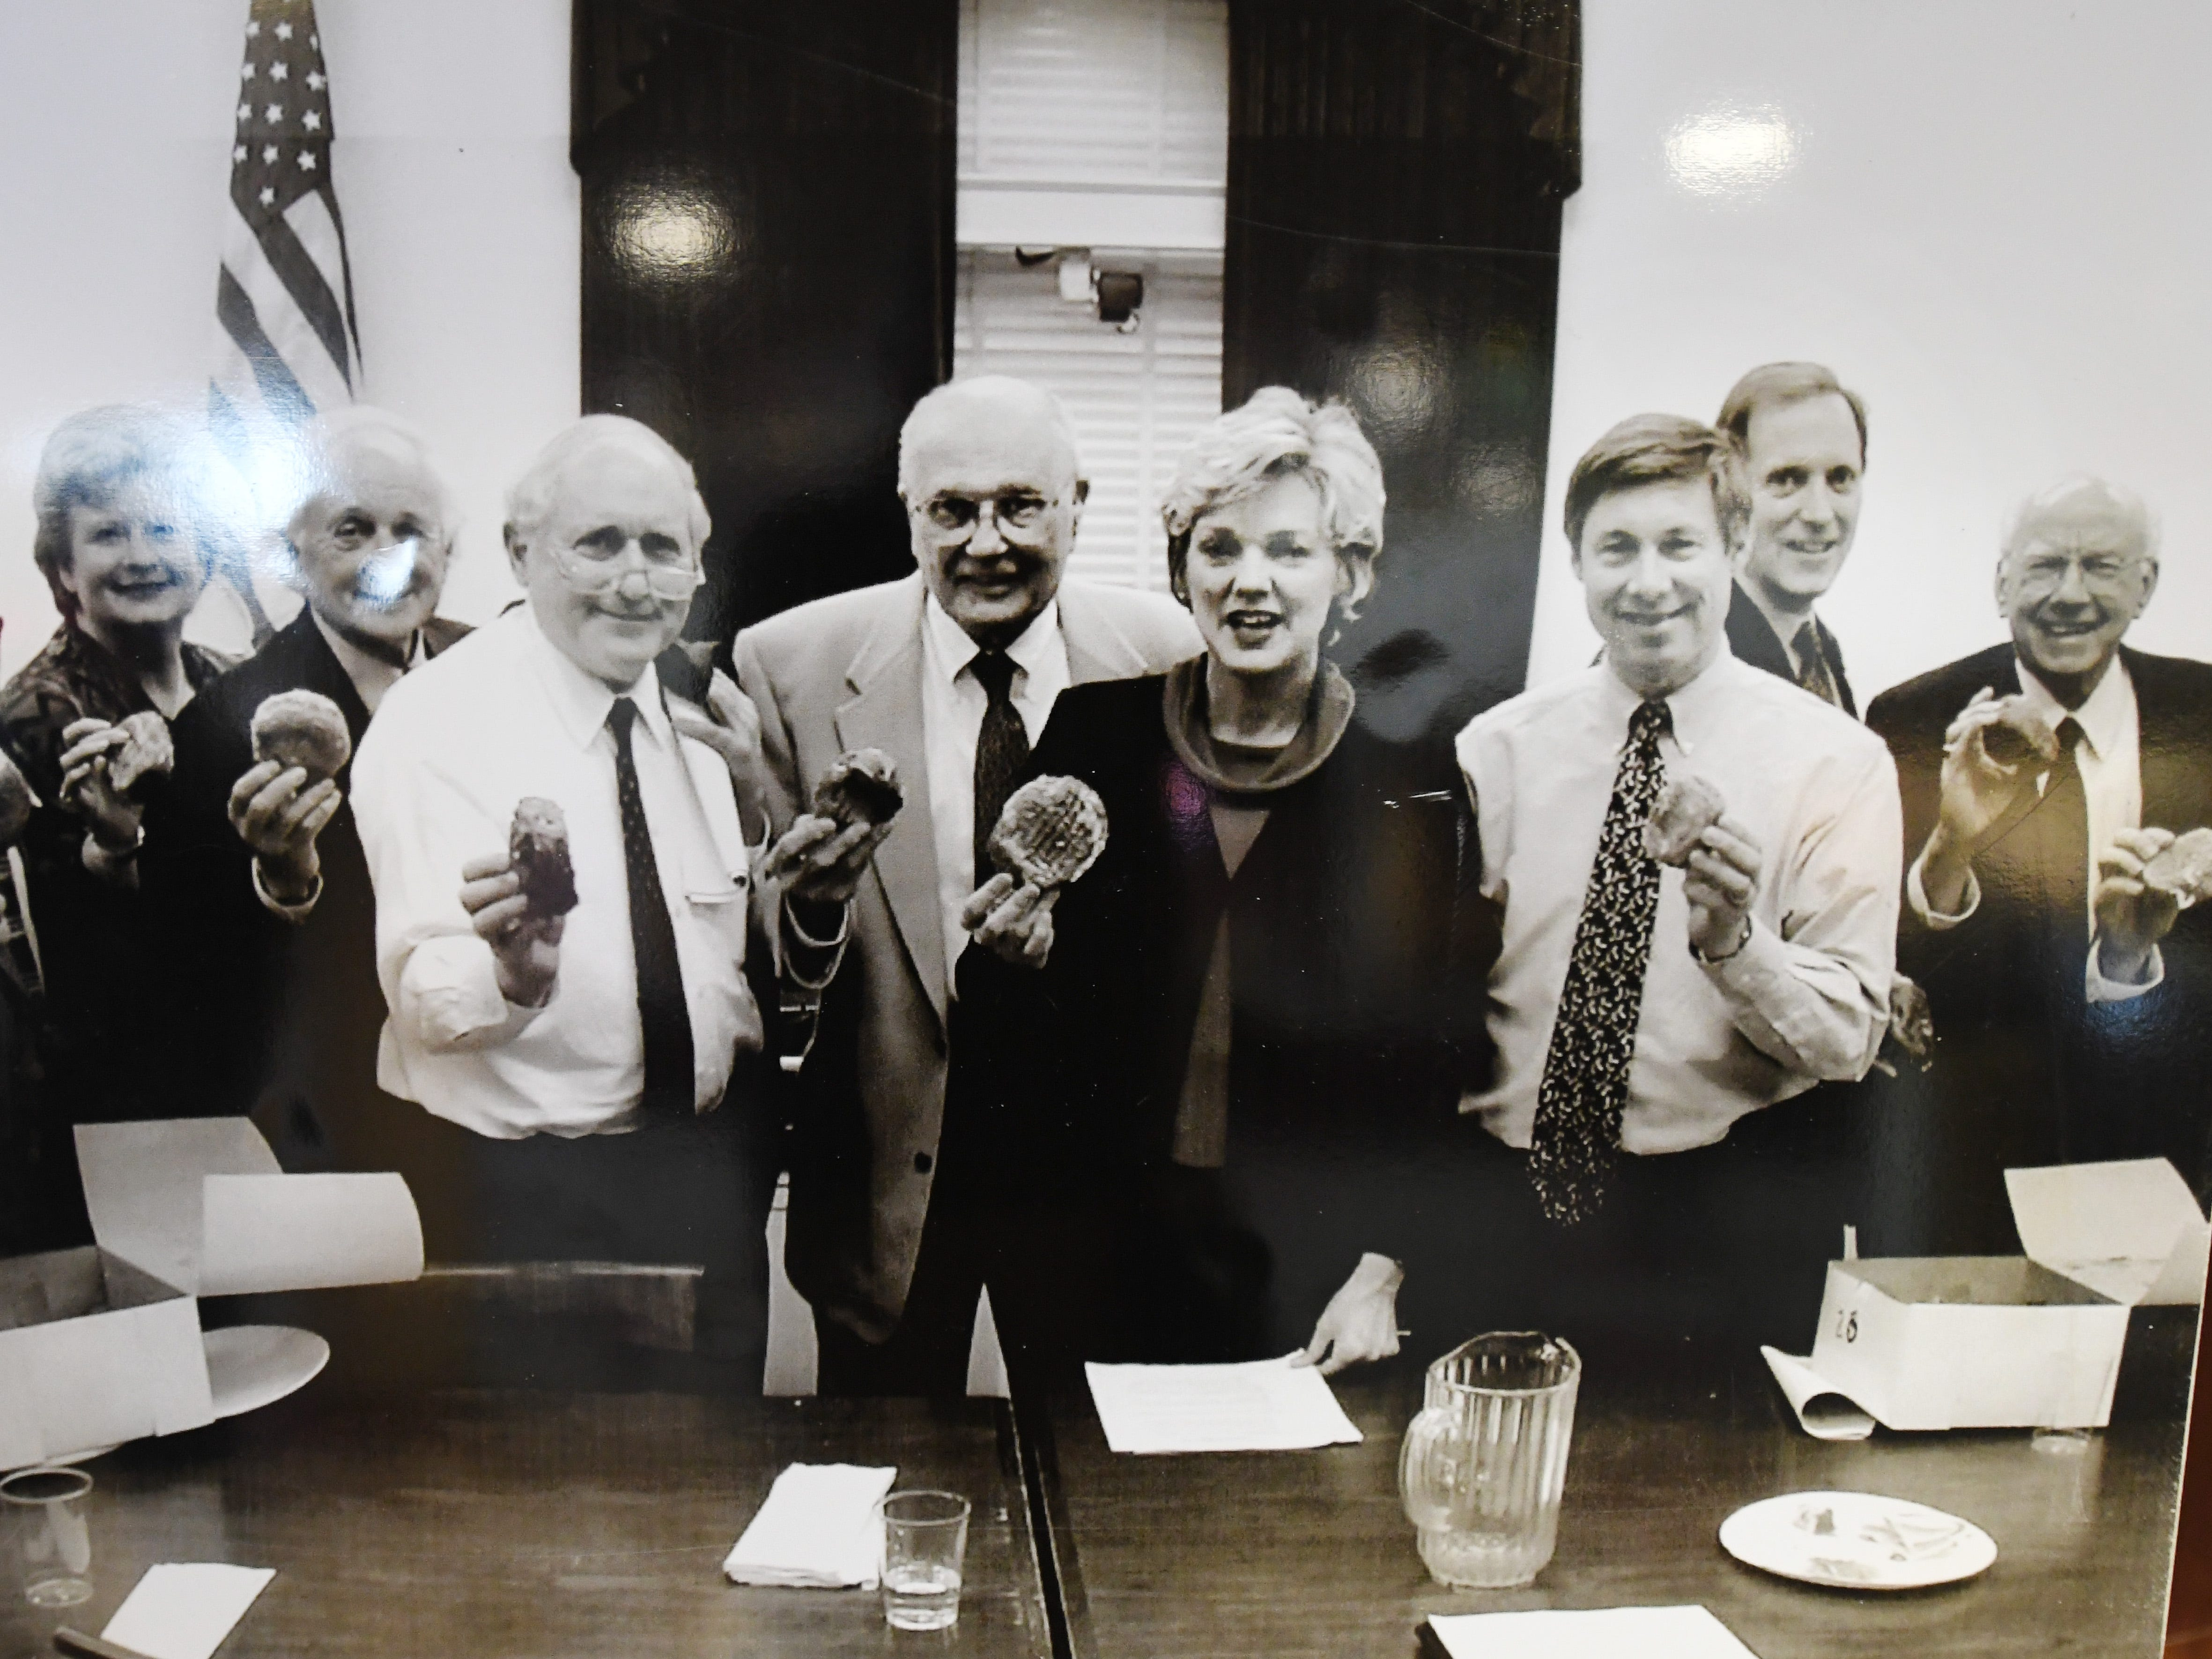 John Dingell stands just behind Michigan Gov. Jennifer Granholm, center, with other members of Michigan's congressional delegation, circa 2003.